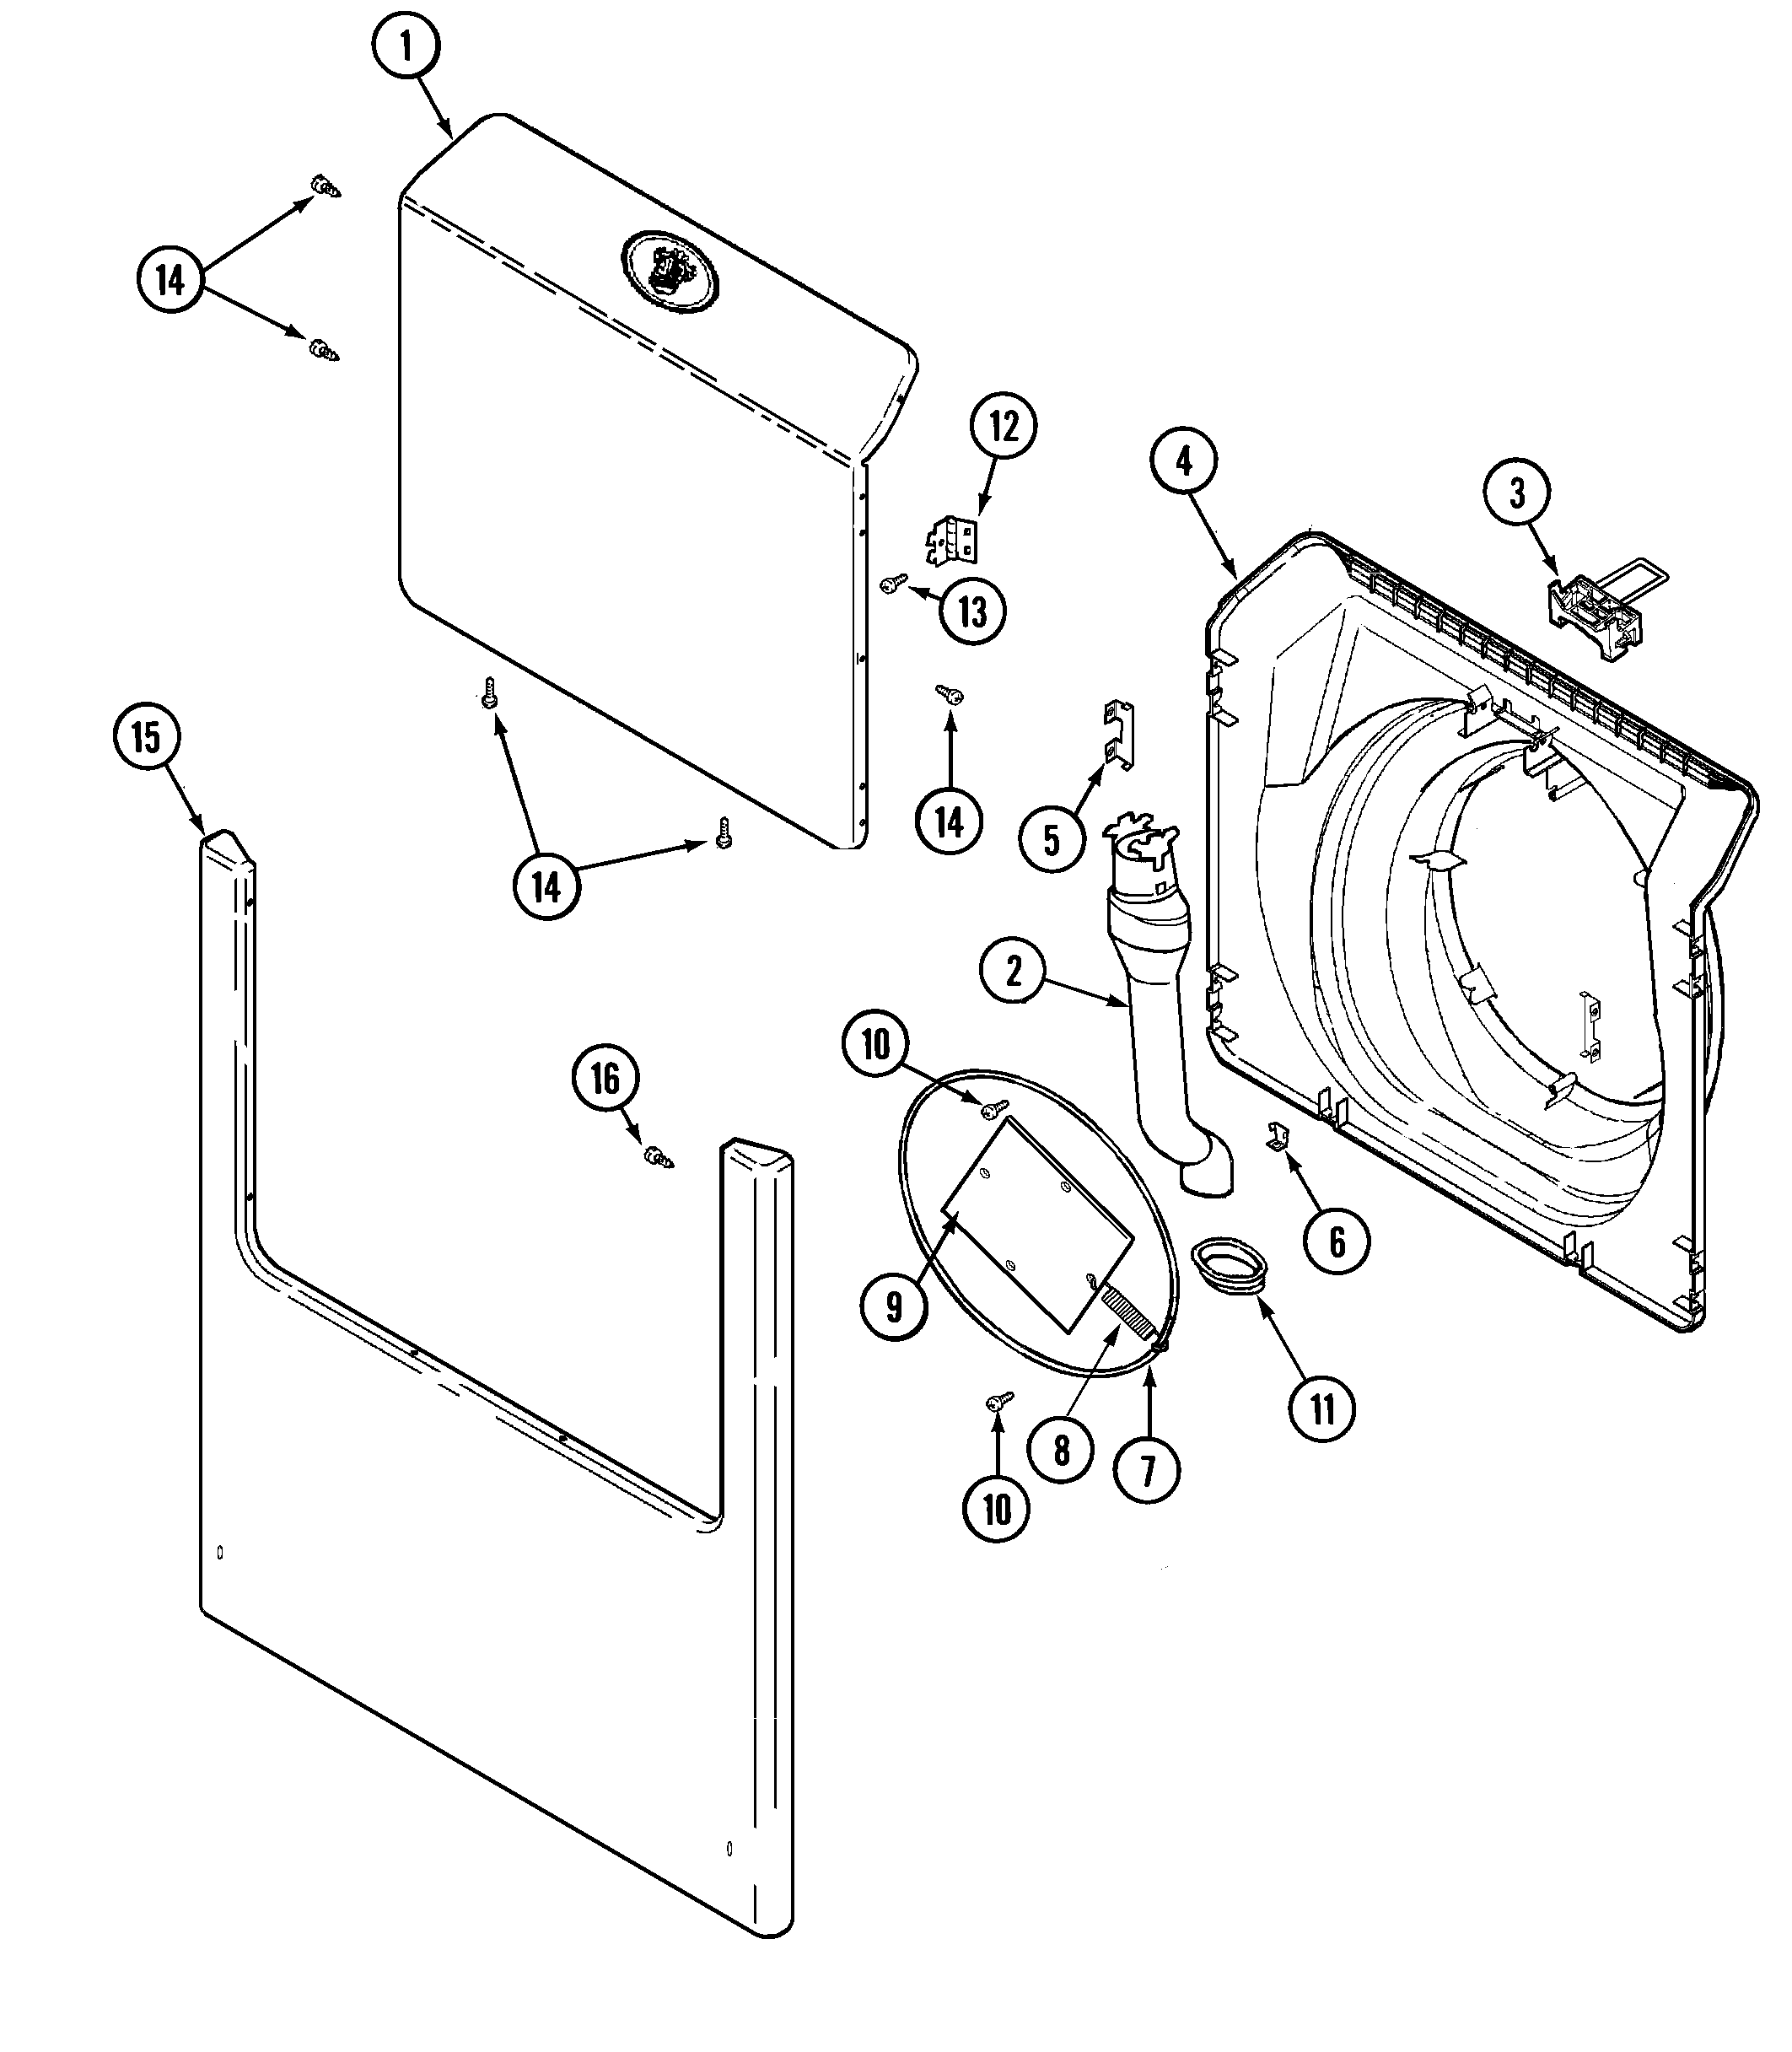 wiring for maytag dryer moreover my maytag performa med5740tq0 dryer neptune washer diagram furthermore maytag dryer parts diagram [ 2125 x 2433 Pixel ]